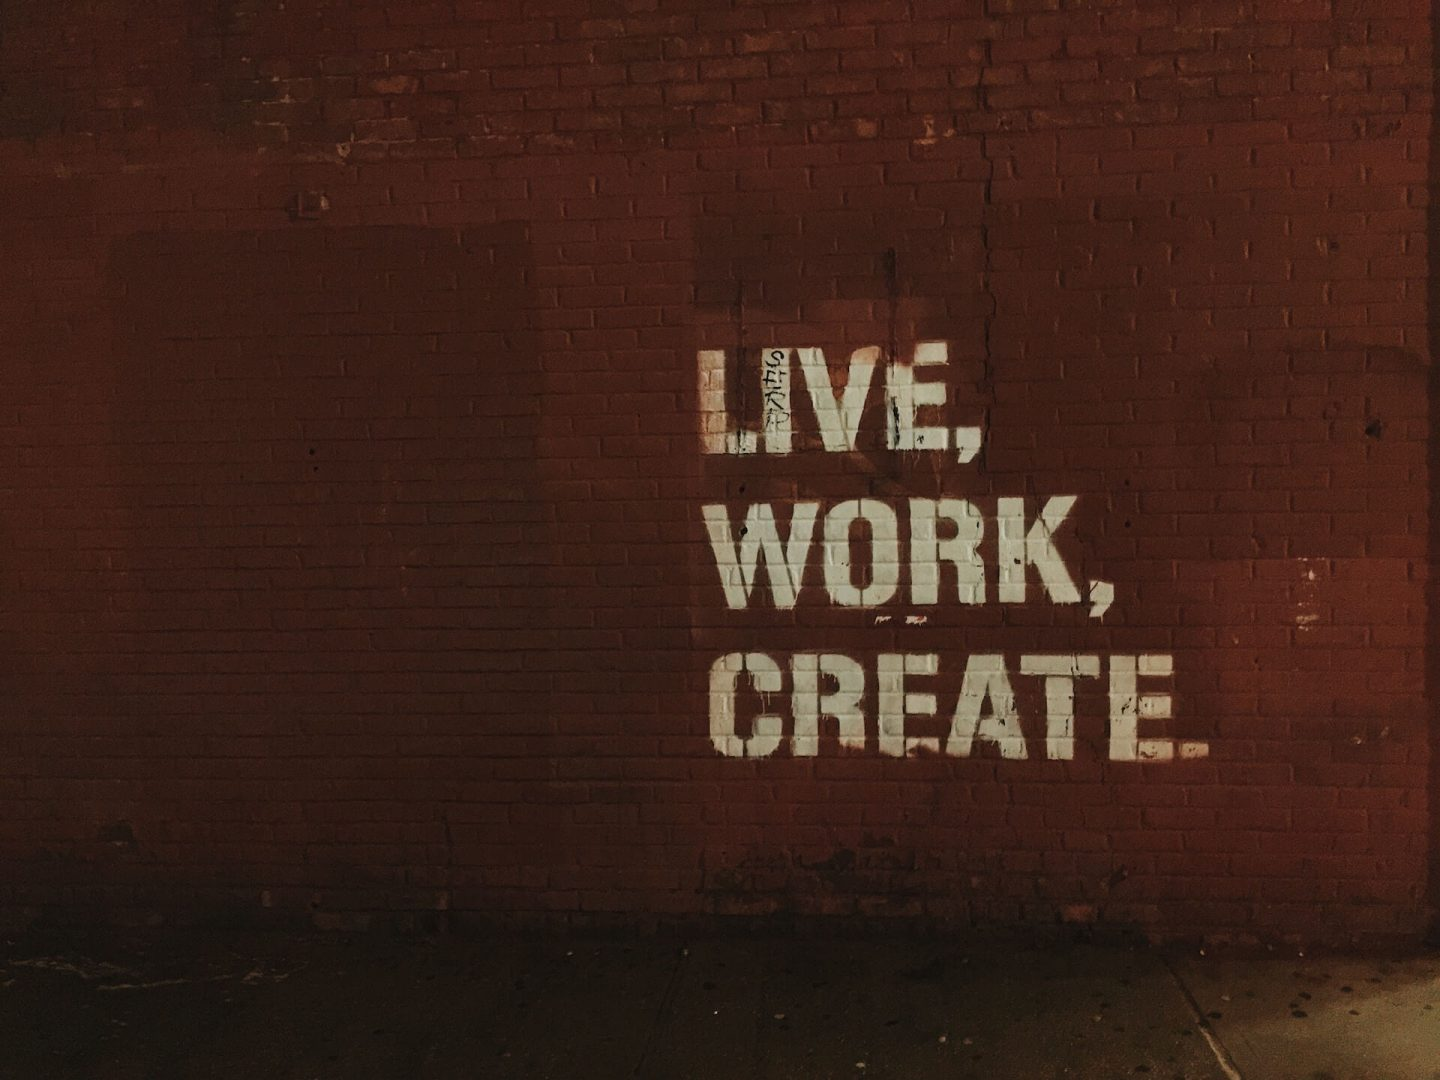 Get a quote - Live, Work, Create